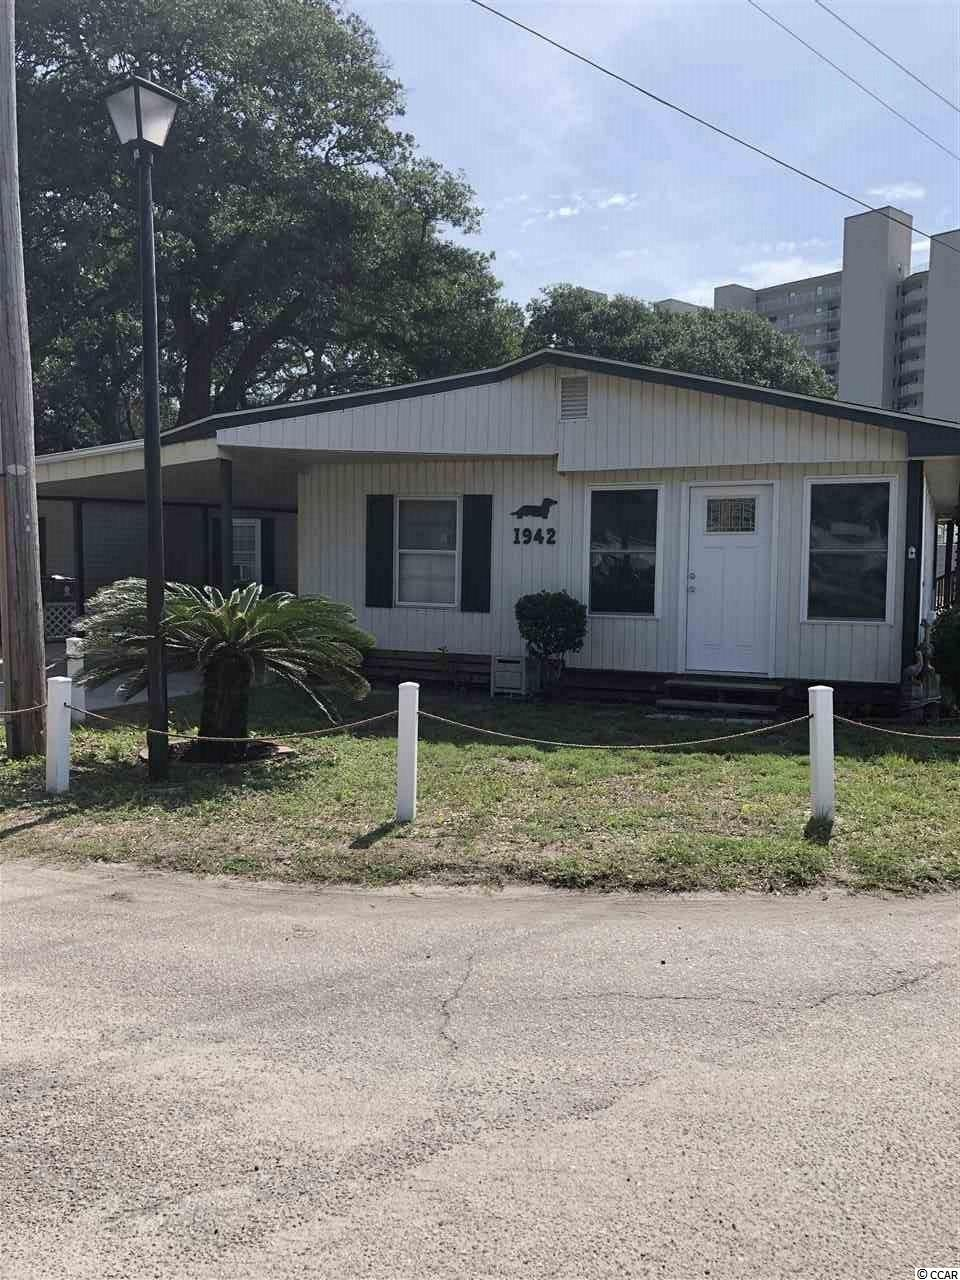 Spacious 3 bed 1 & 1/2 bath home, with den  2 blocks from beach.  Large den with multiple windows allowing natural light in. Open concept floor plan  gives plenty of space for guest.  Large living room just off the kitchen connecting to the den.  Enjoy the sights and sounds of the ocean on the top deck with views of the beach.   Can be used as a vacation rental. Home includes access to Oceanside amenities including, private beach access and parking, 24 hour security, 2 outdoor pools, spa hot tub, splash pad, kiddie pools, heated indoor pool, library, fitness center,community center, basketball court, stocked fishing ponds, picnicking areas, volleyball court, bocce ball and horseshoe pit, and children's playground.